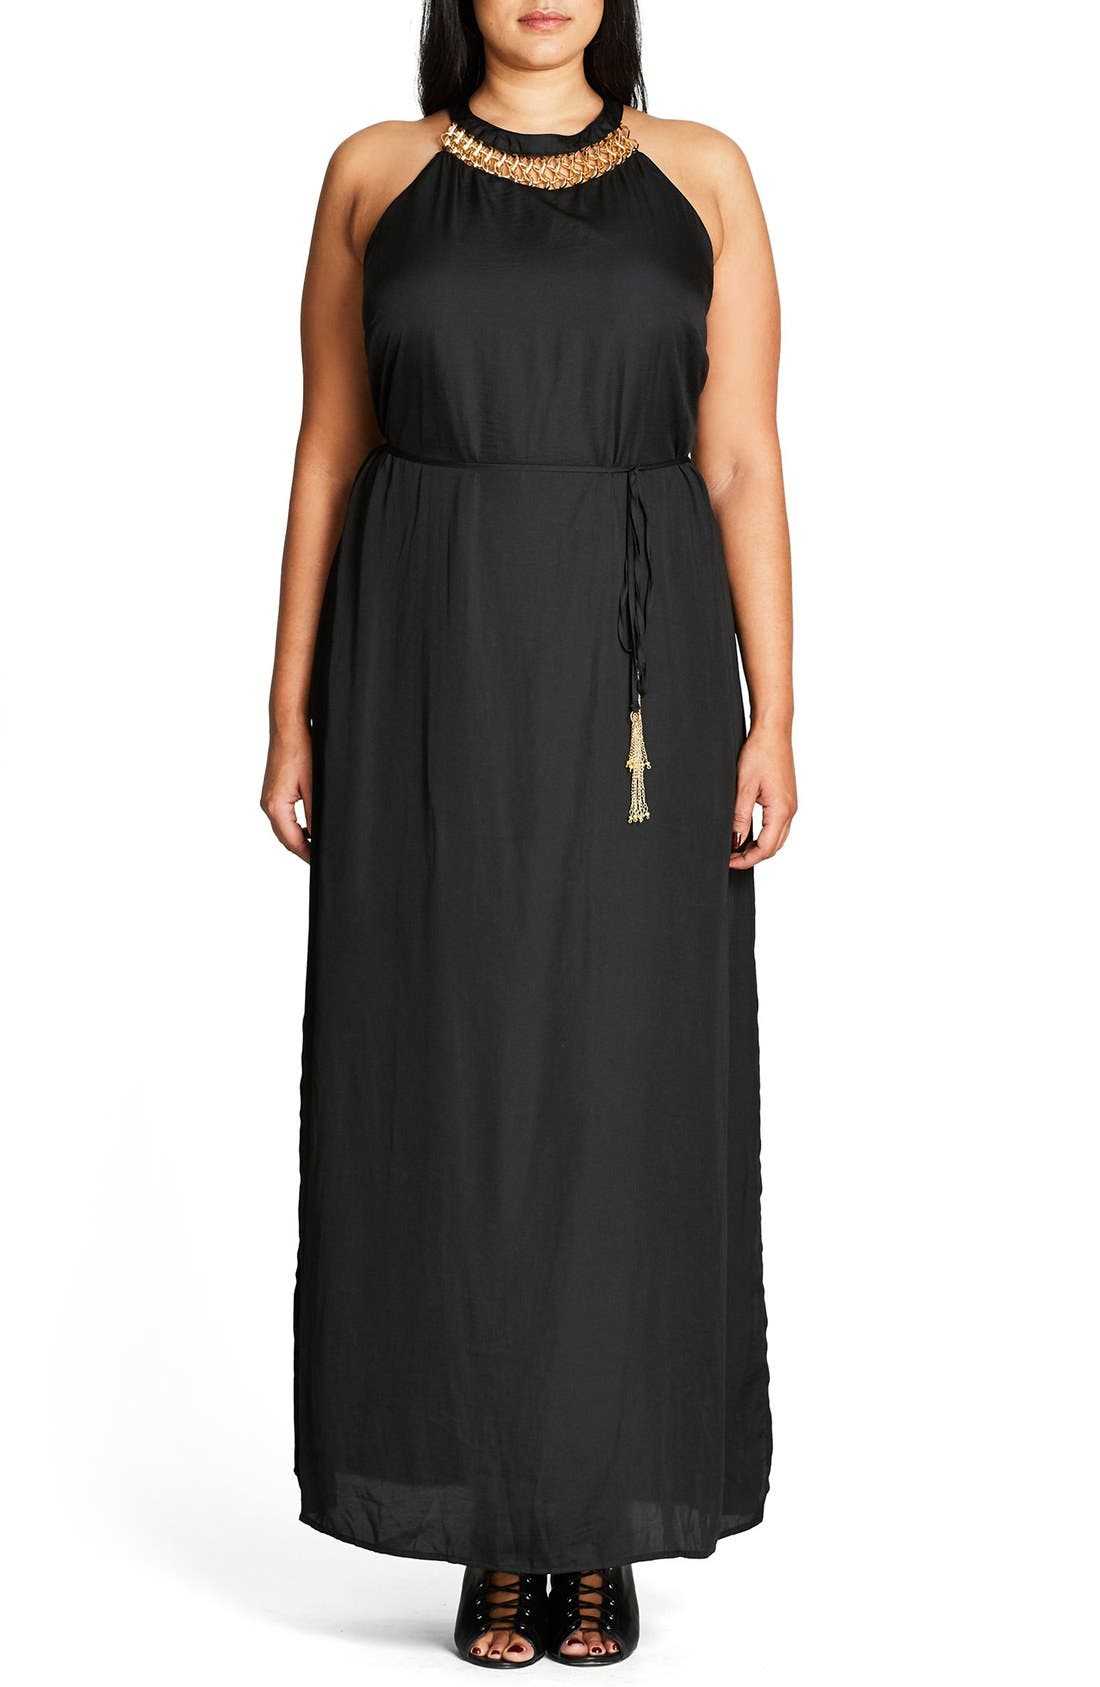 Main Image - City Chic Ring Detail Maxi Dress (Plus Size)